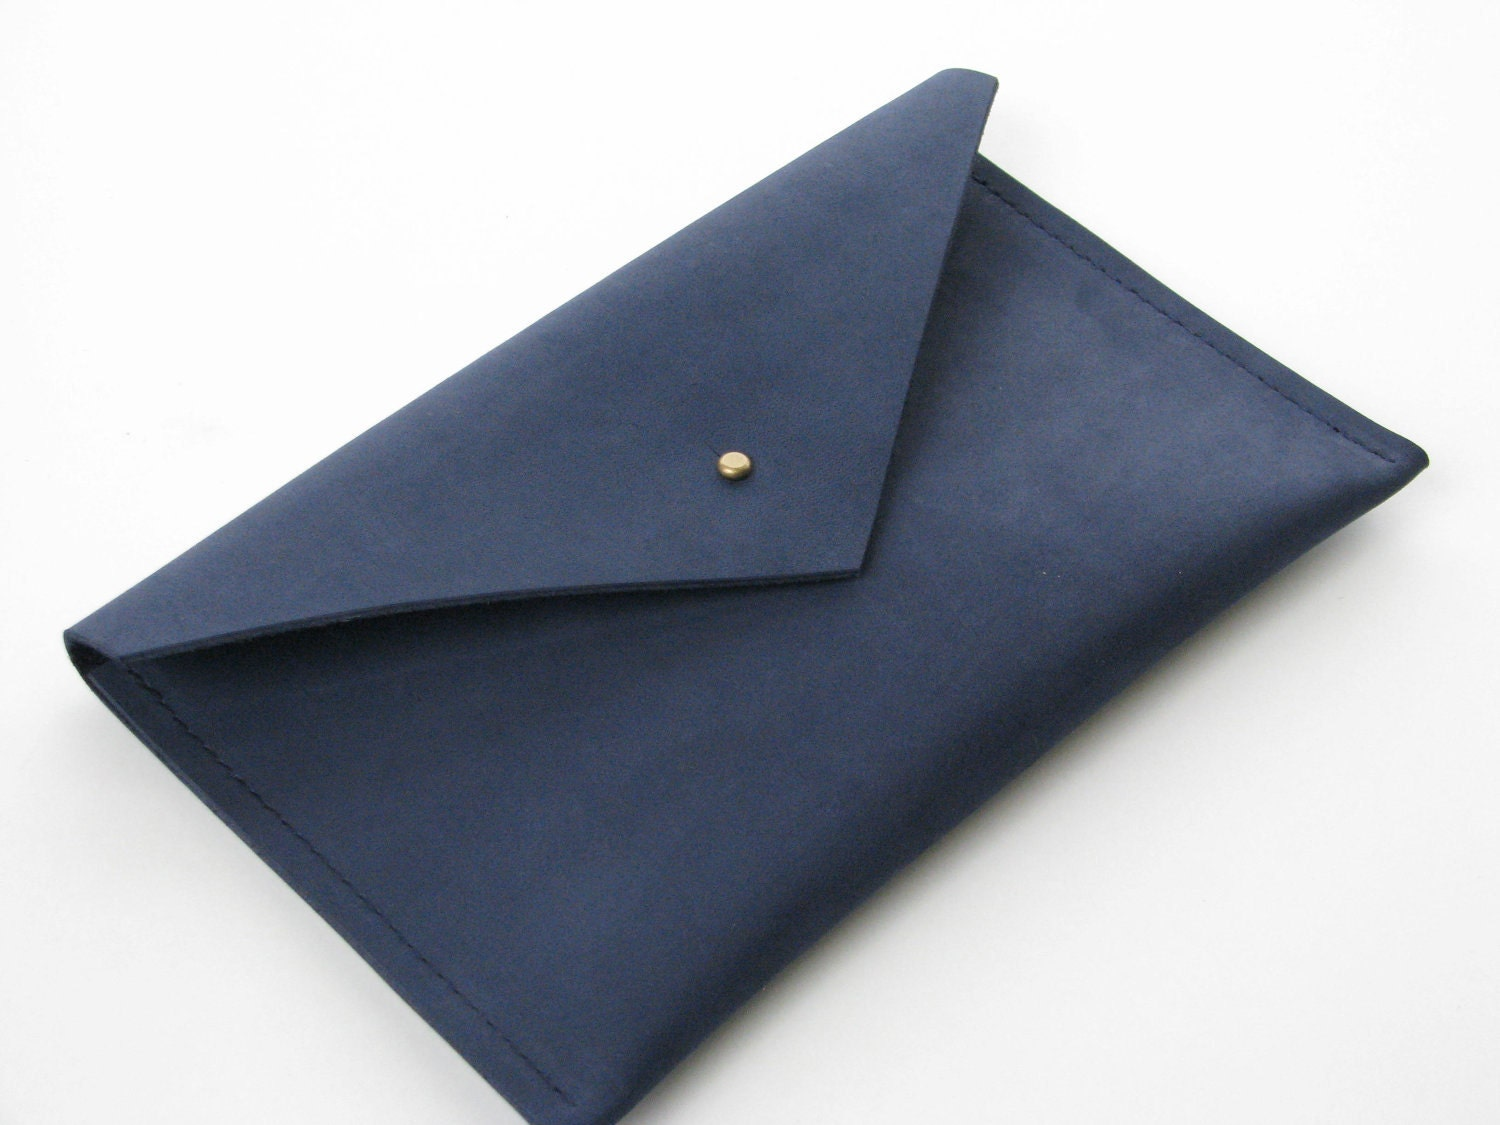 Clutch Navy Evening Bags ($ - $2,): 30 of items - Shop Clutch Navy Evening Bags from ALL your favorite stores & find HUGE SAVINGS up to 80% off Clutch Navy Evening Bags, including GREAT DEALS like Bijoux Terner Bags | Set Of 2 Navy Crystal Beaded Clutch Evening Bags | Color: Blue | Size: Os ($).